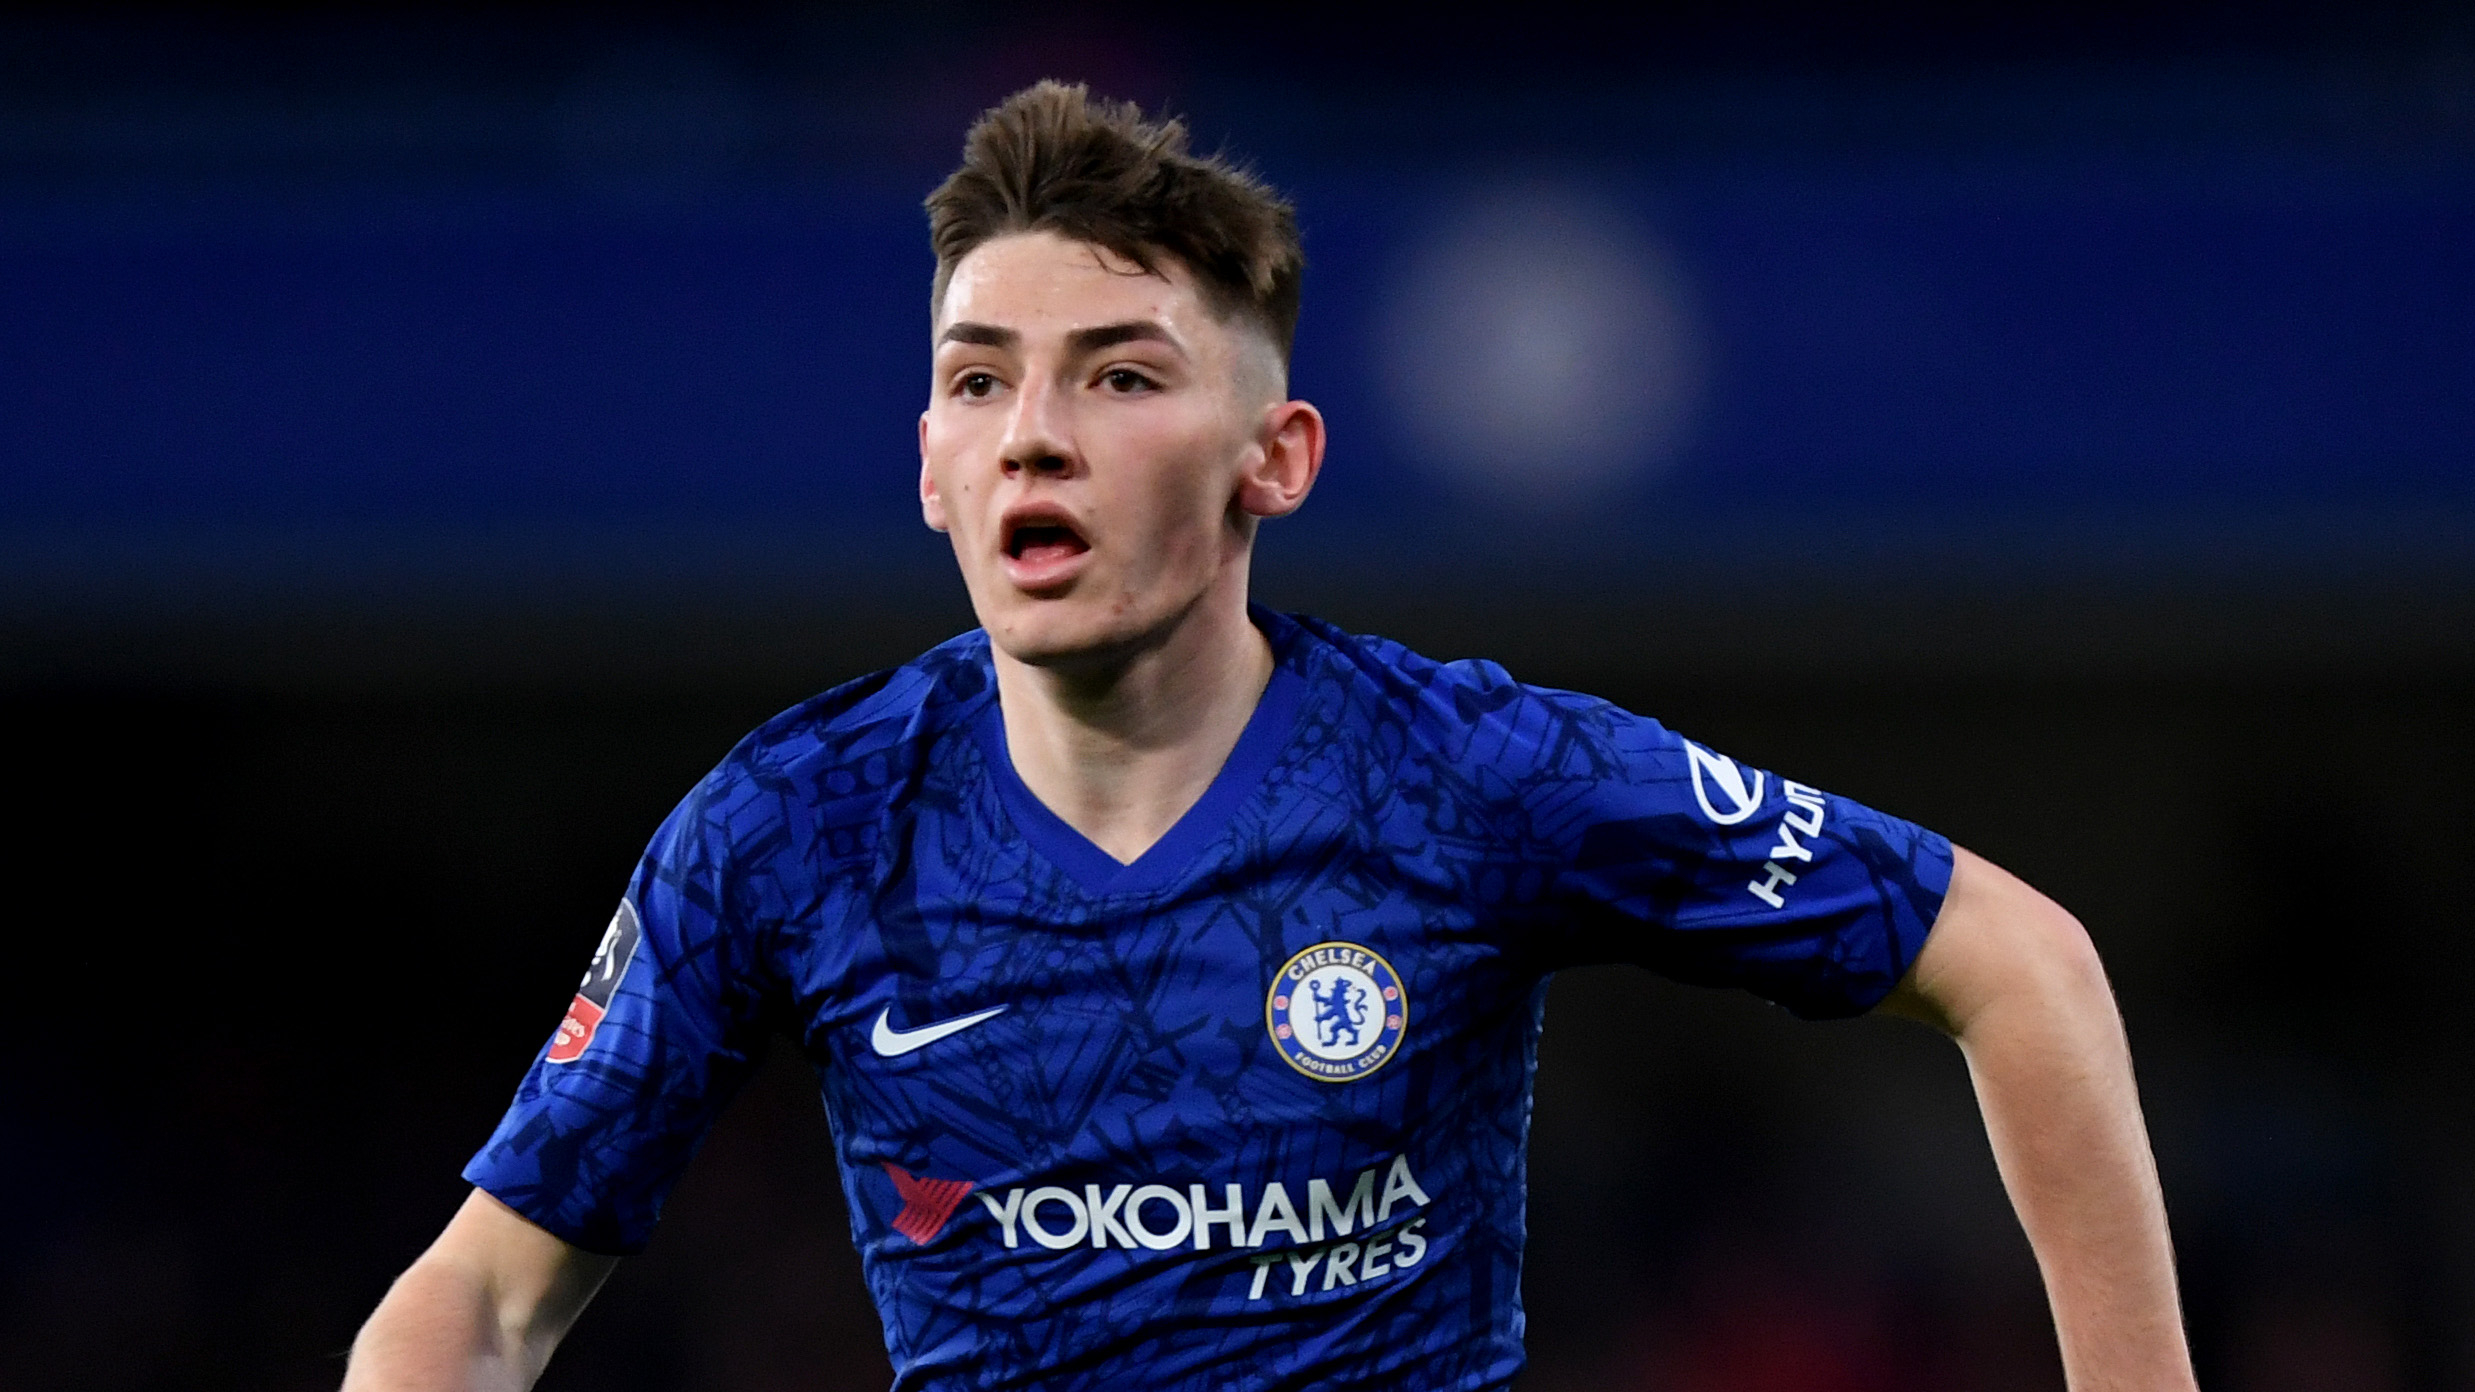 Chelsea midfielder Gilmour facing up to four months out after knee surgery